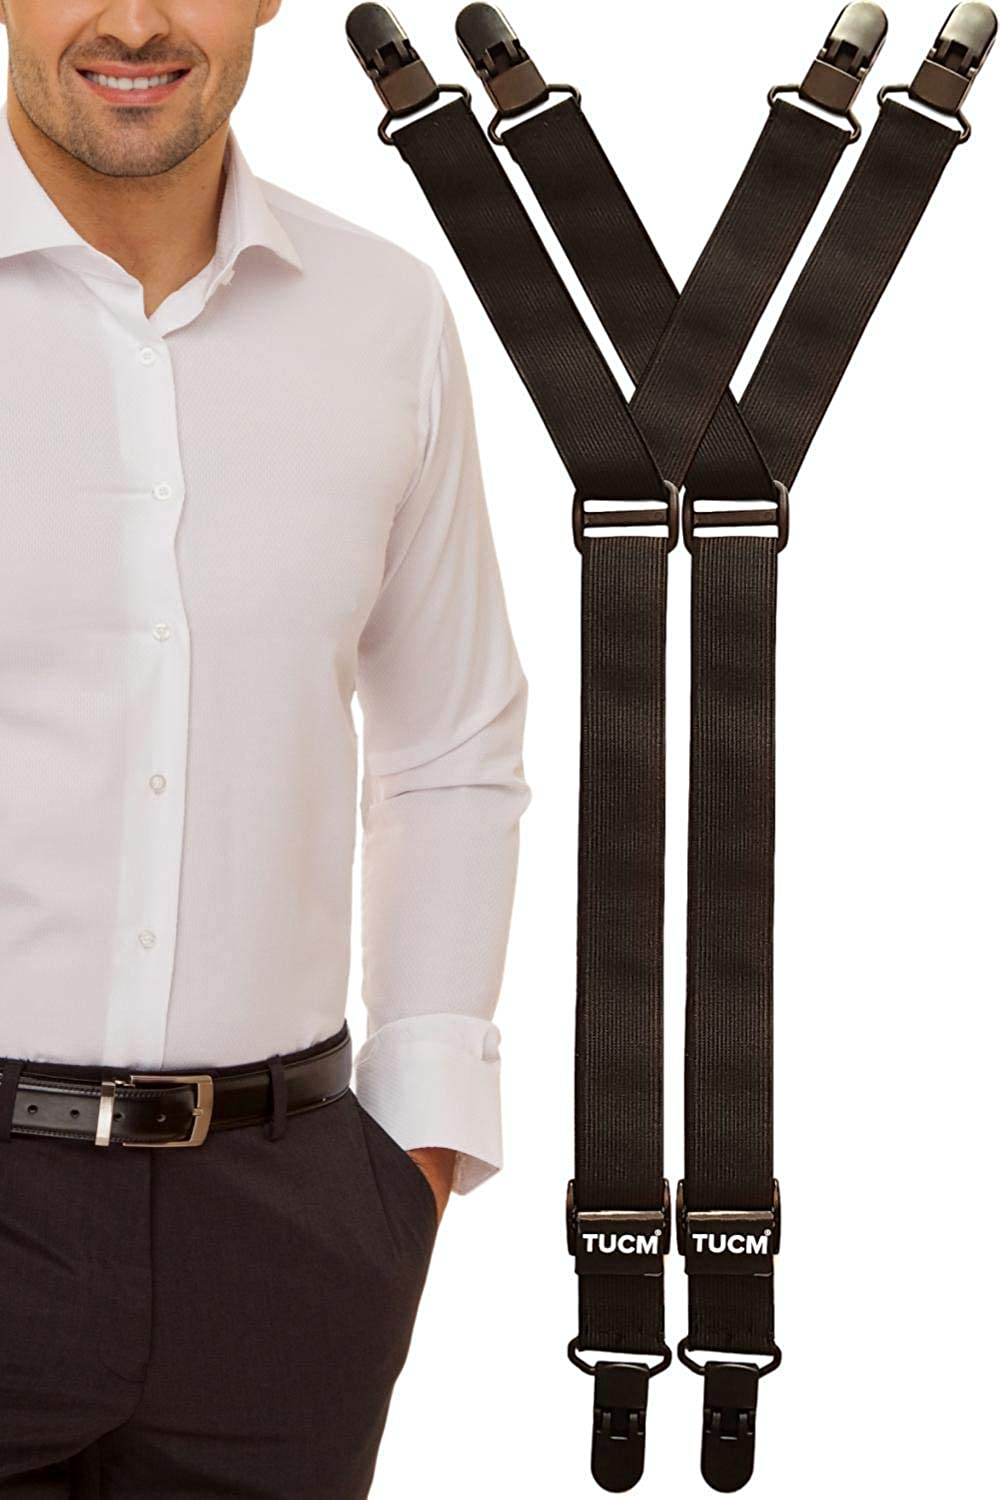 Shirt Stays Made in the UK   Comfort 2-in-1 Lightweight, Slim Design for Men   Shirt Garters Suspenders that attach to sock or around thigh and keep ...